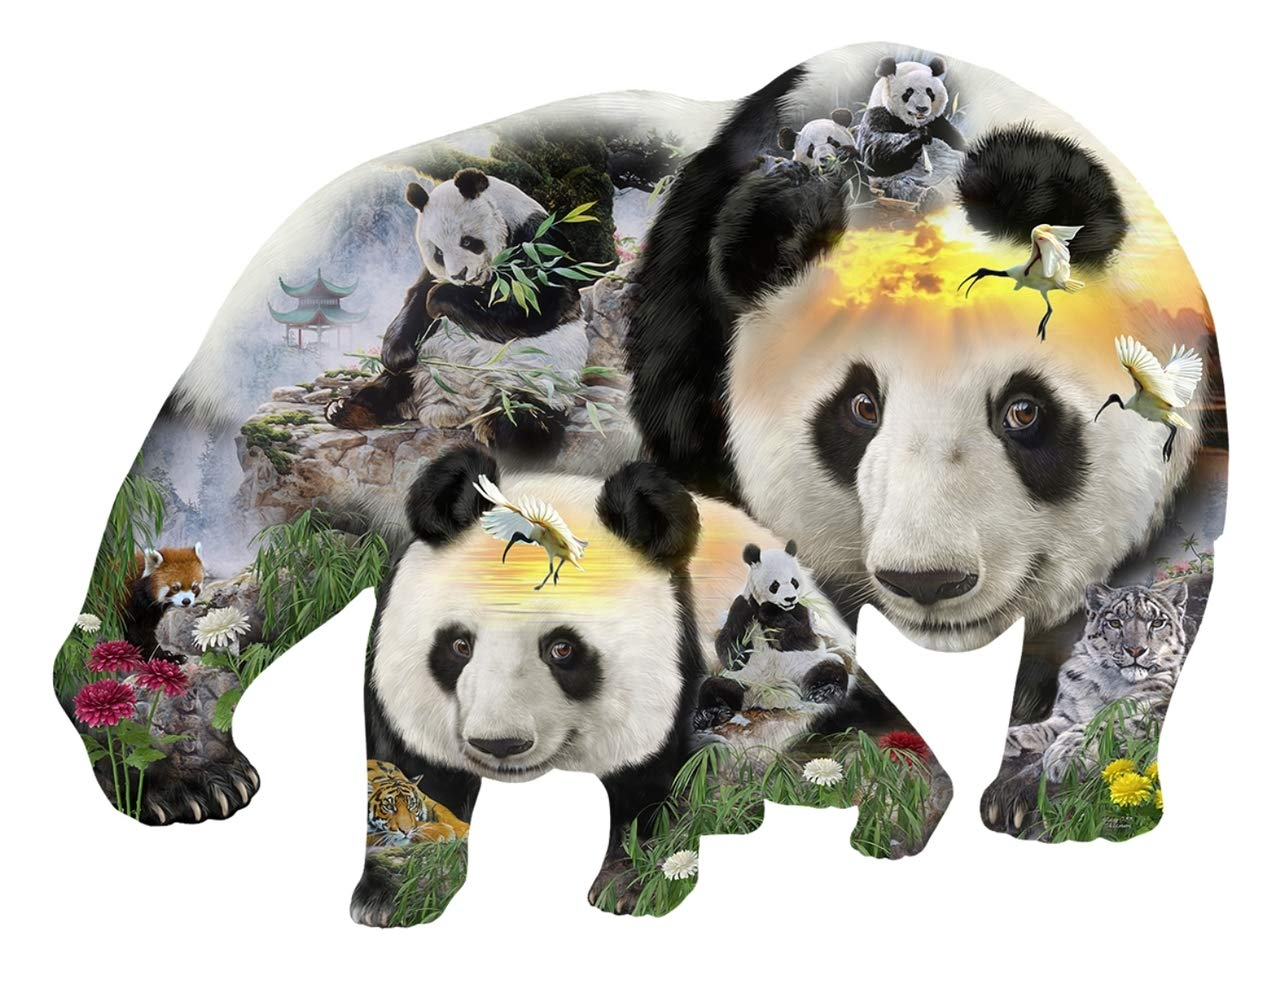 【★安心の定価販売★】 Panda-Monuim 1000 pc Shaped Jigsaw Shaped Puzzle Puzzle pc by SunsOut B07G2SLPK5, キタカンバラグン:862c5f43 --- a0267596.xsph.ru